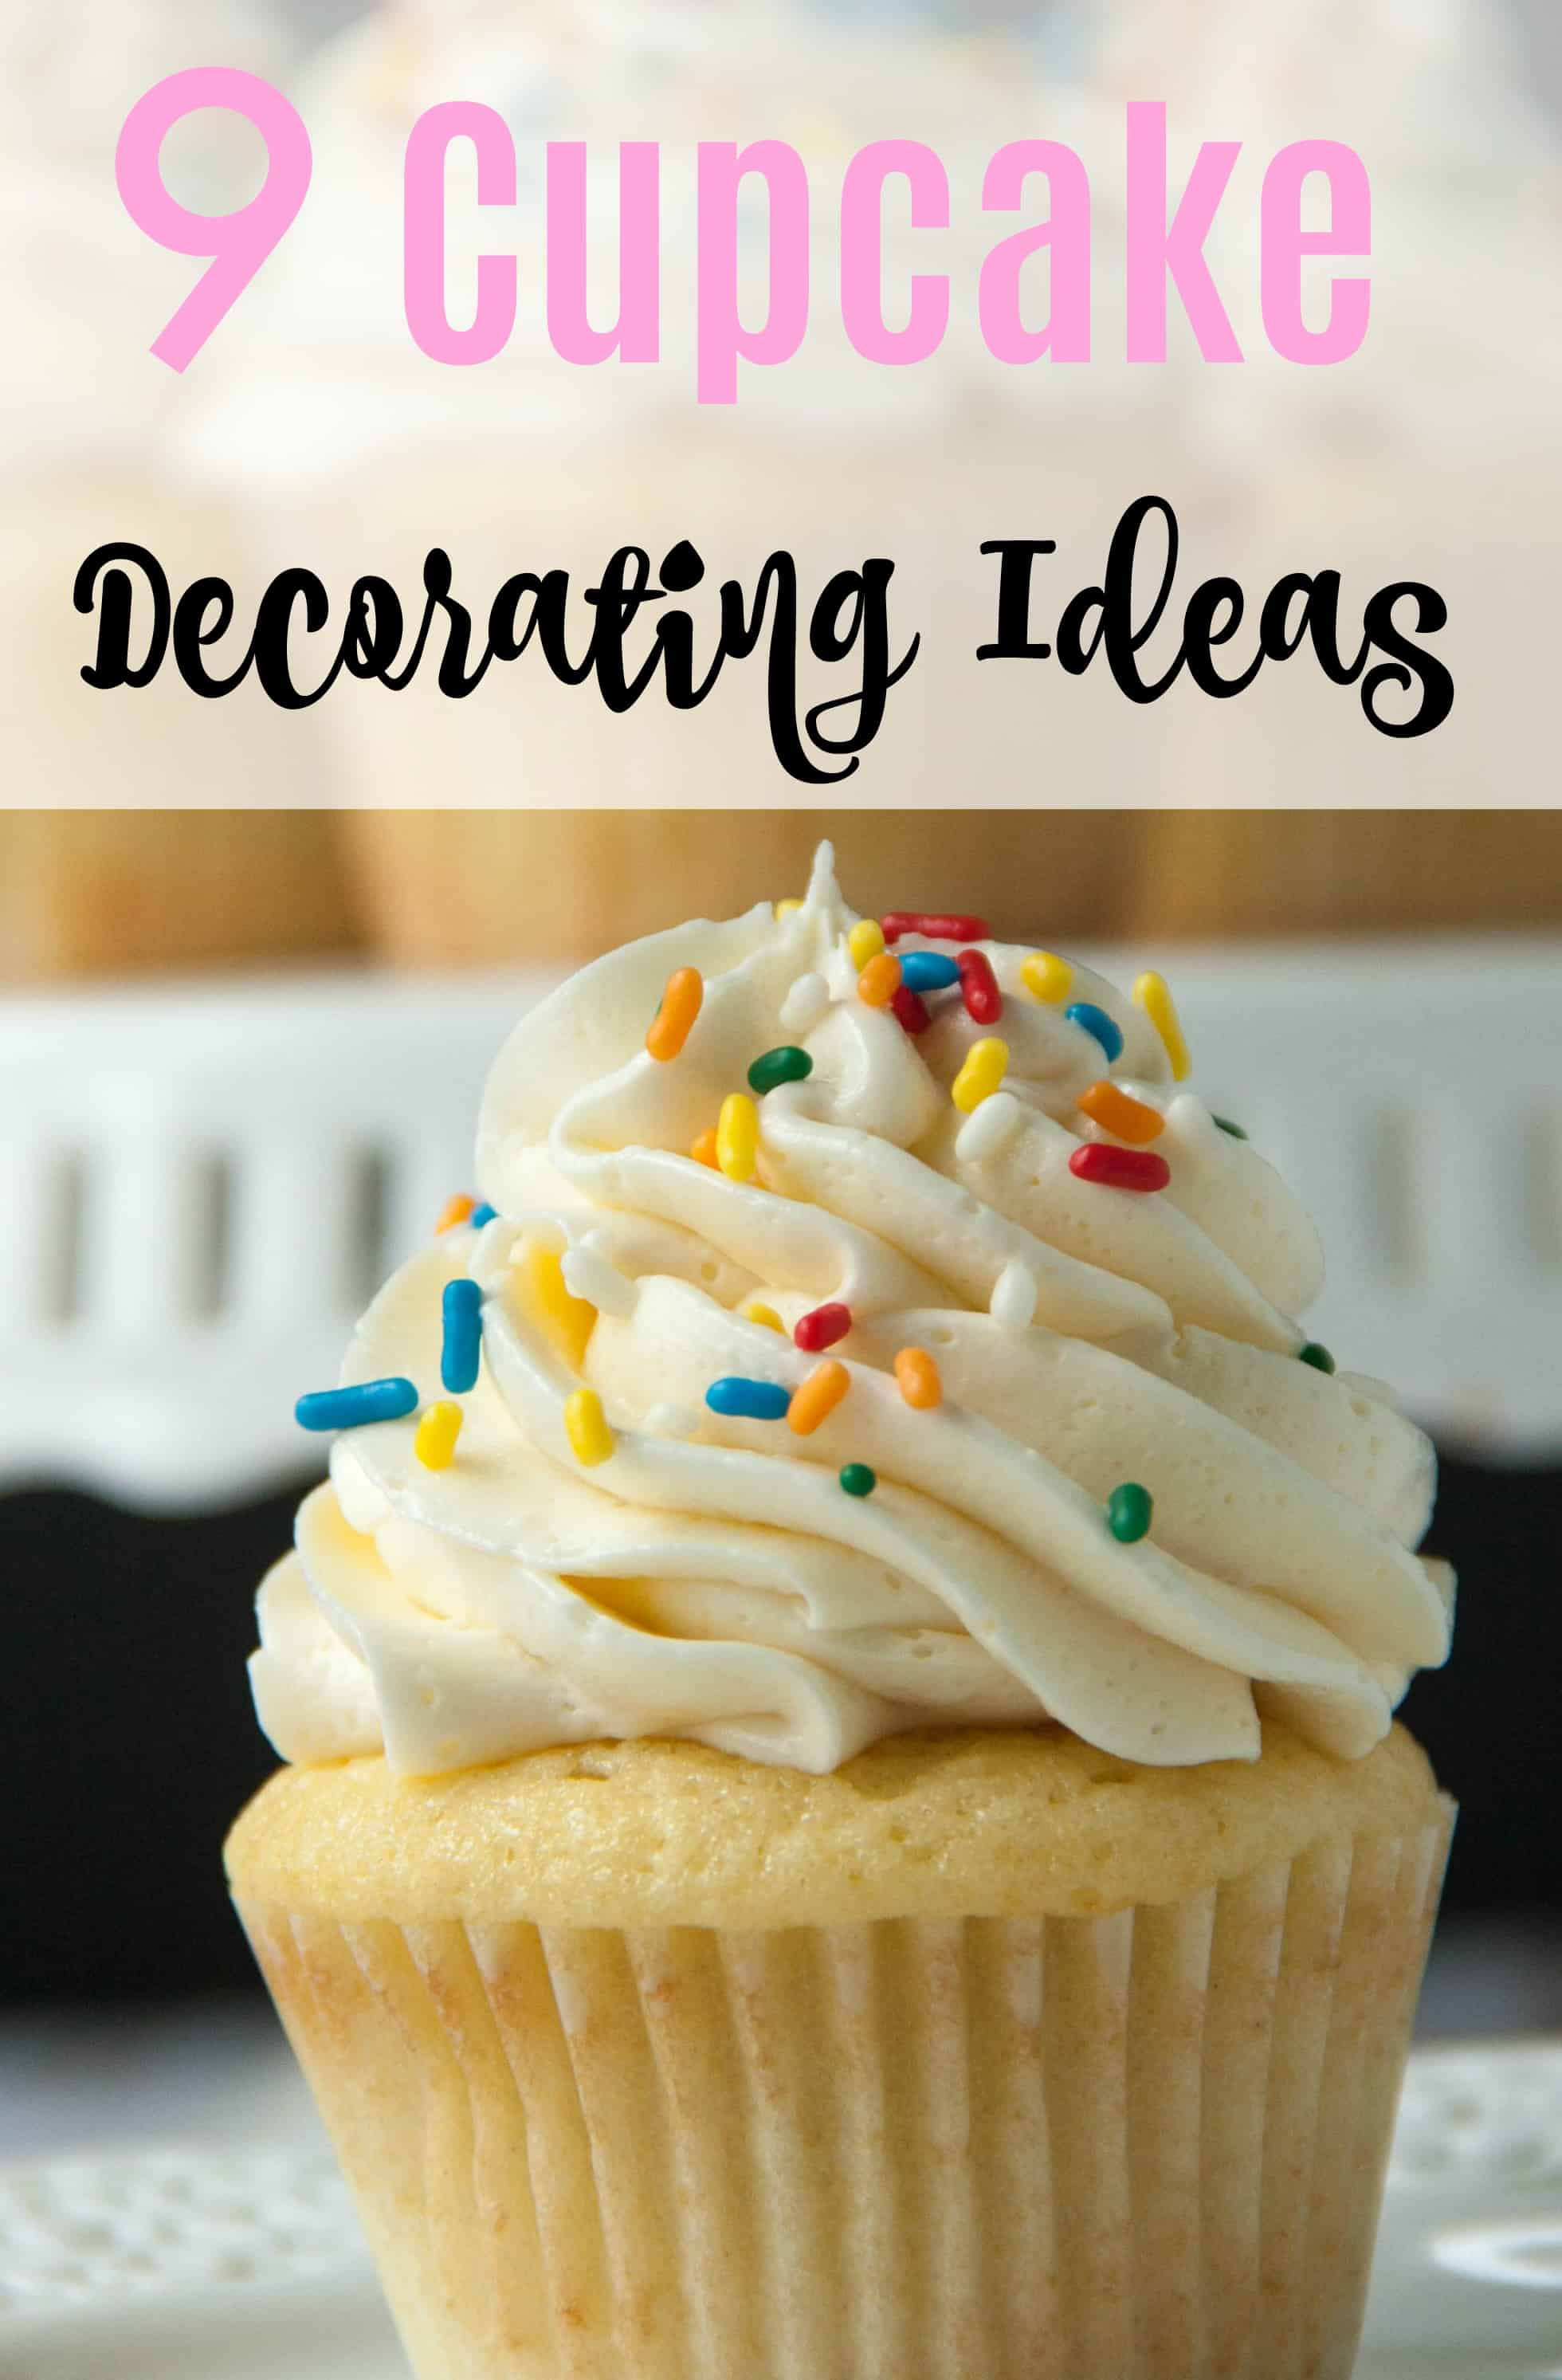 12 Easy Cupcake Decorating Ideas Boston Girl Bakes